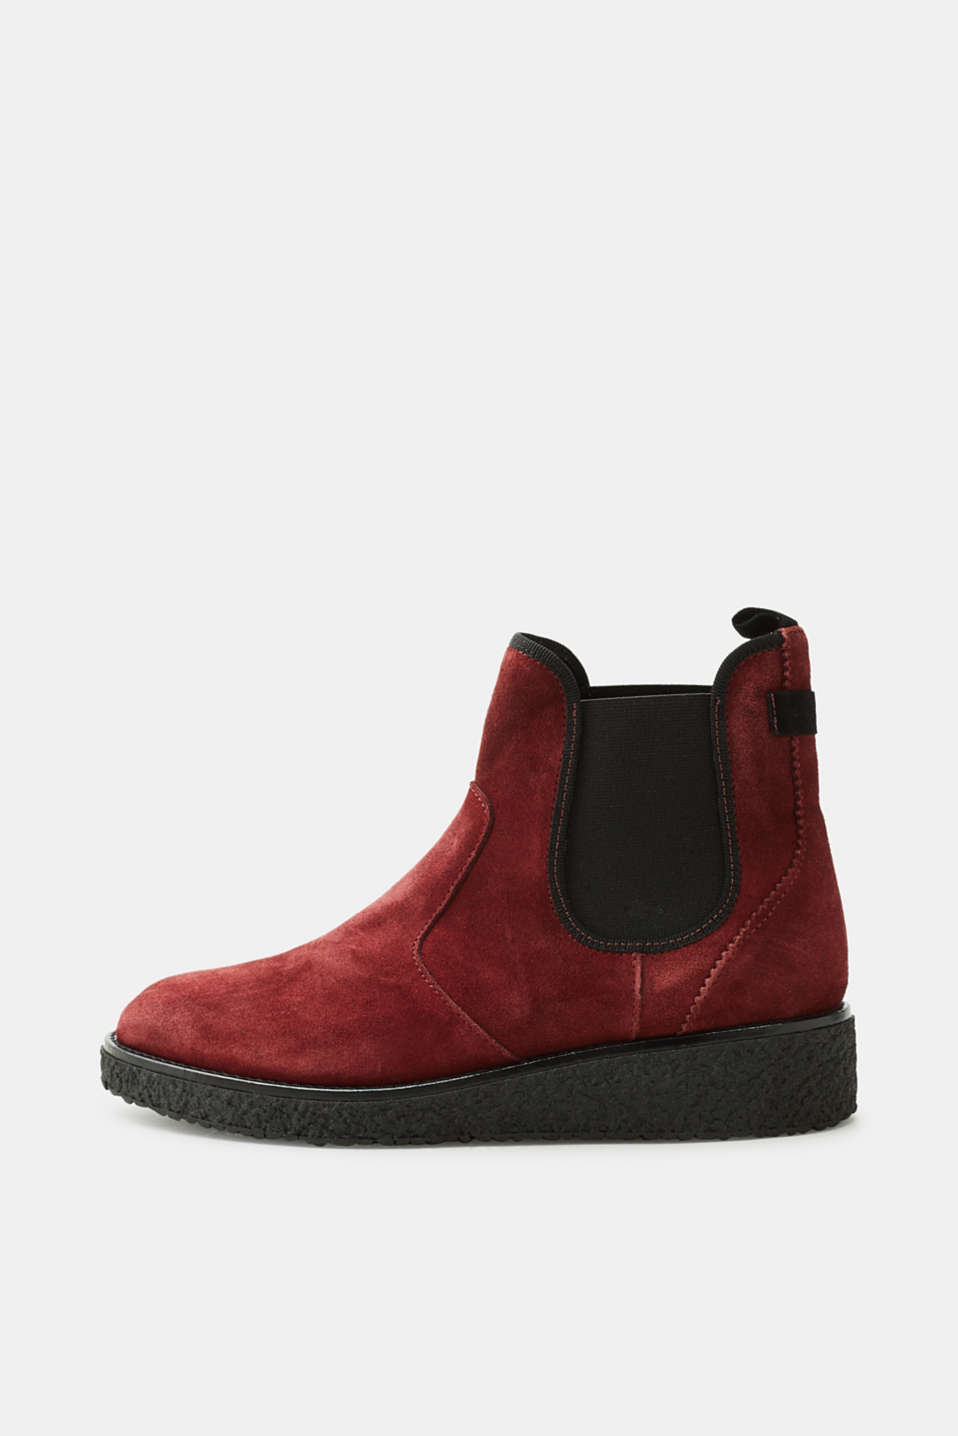 Esprit - Chelsea boots with wedge sole